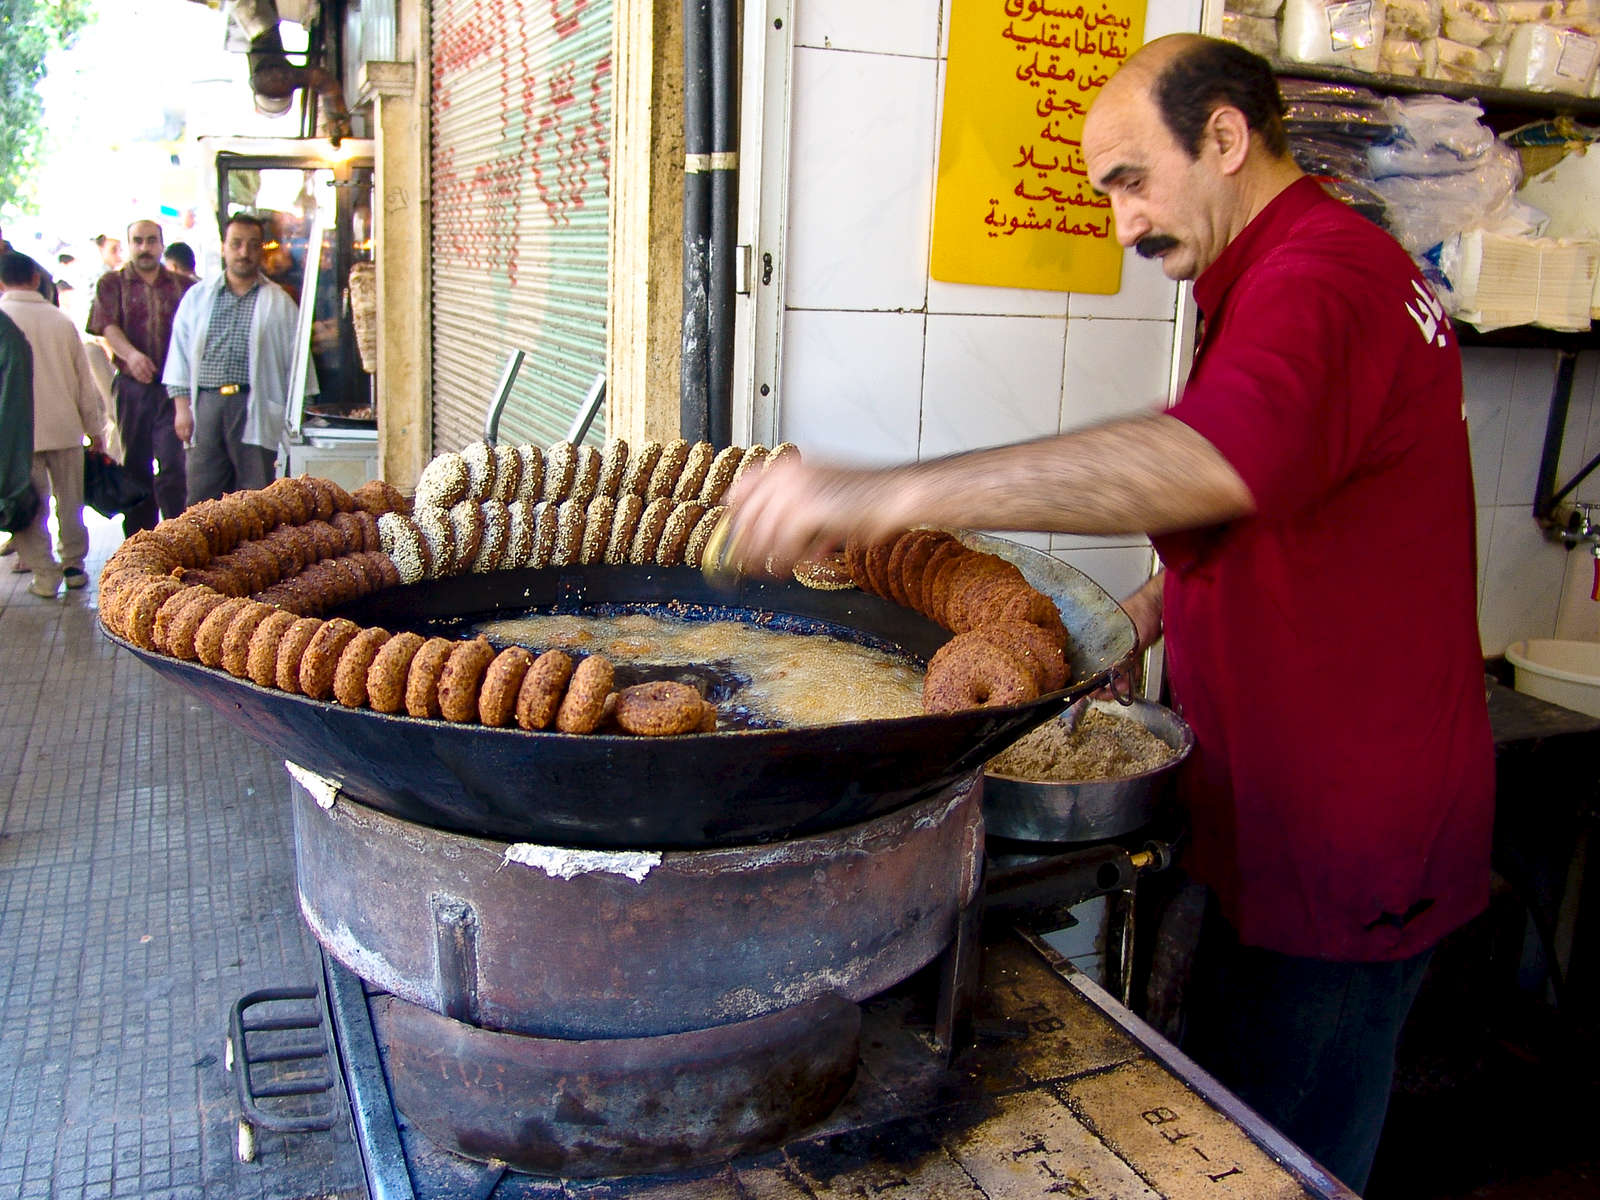 Making felafel in Hama.